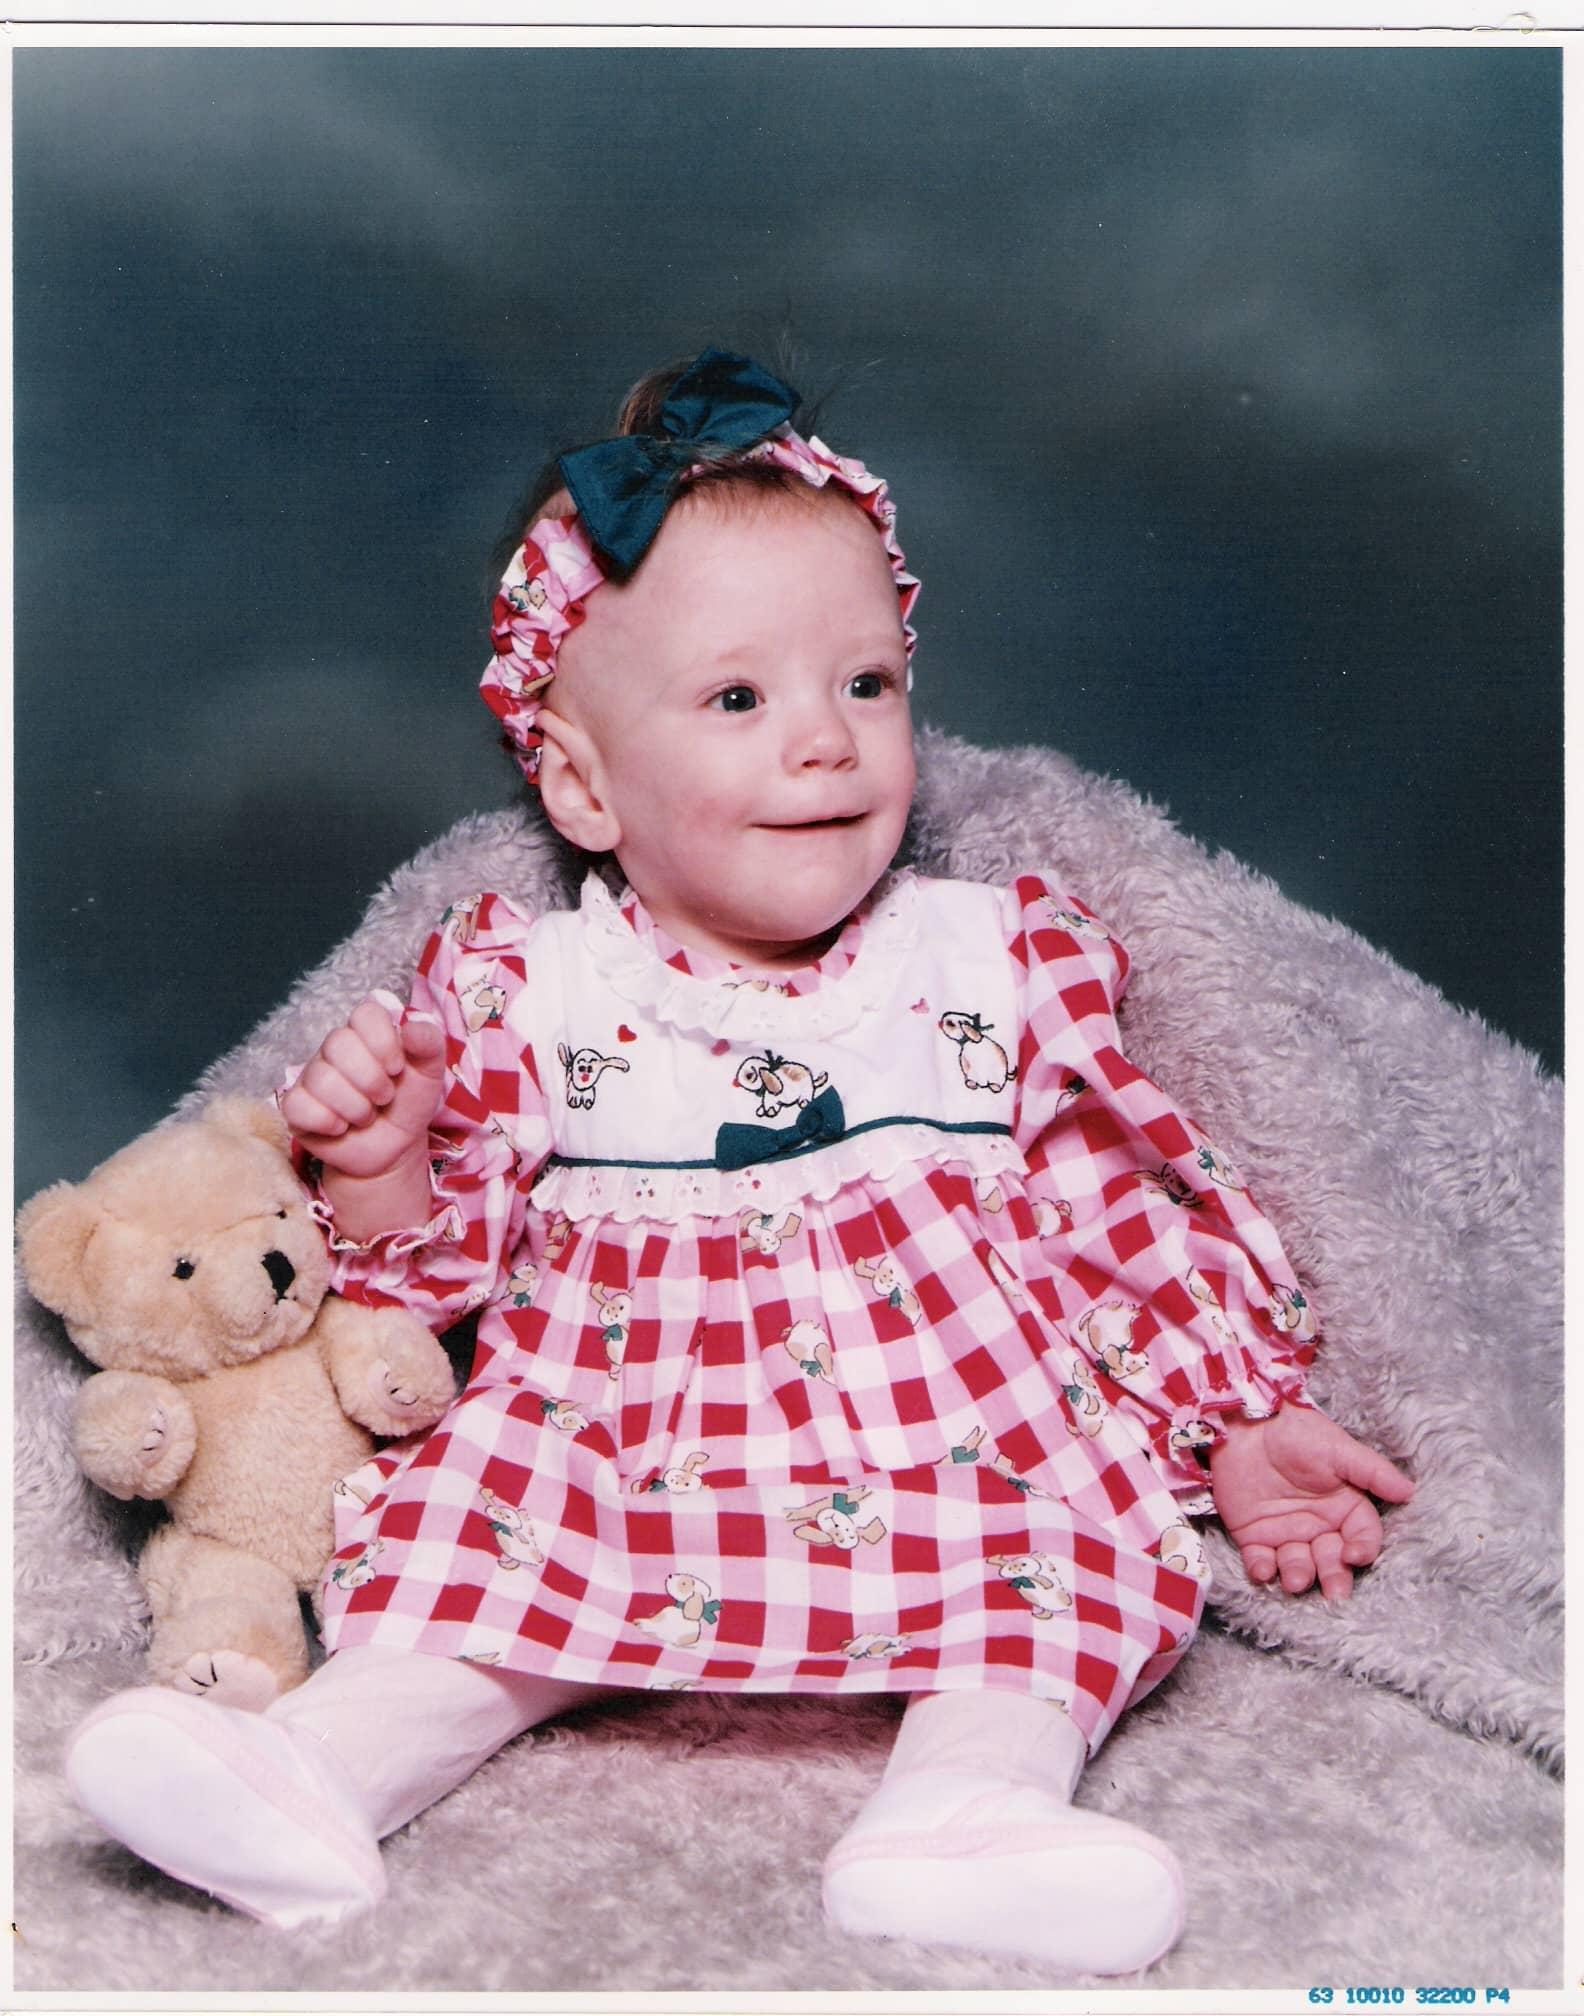 Cute baby girl in a red checker dress